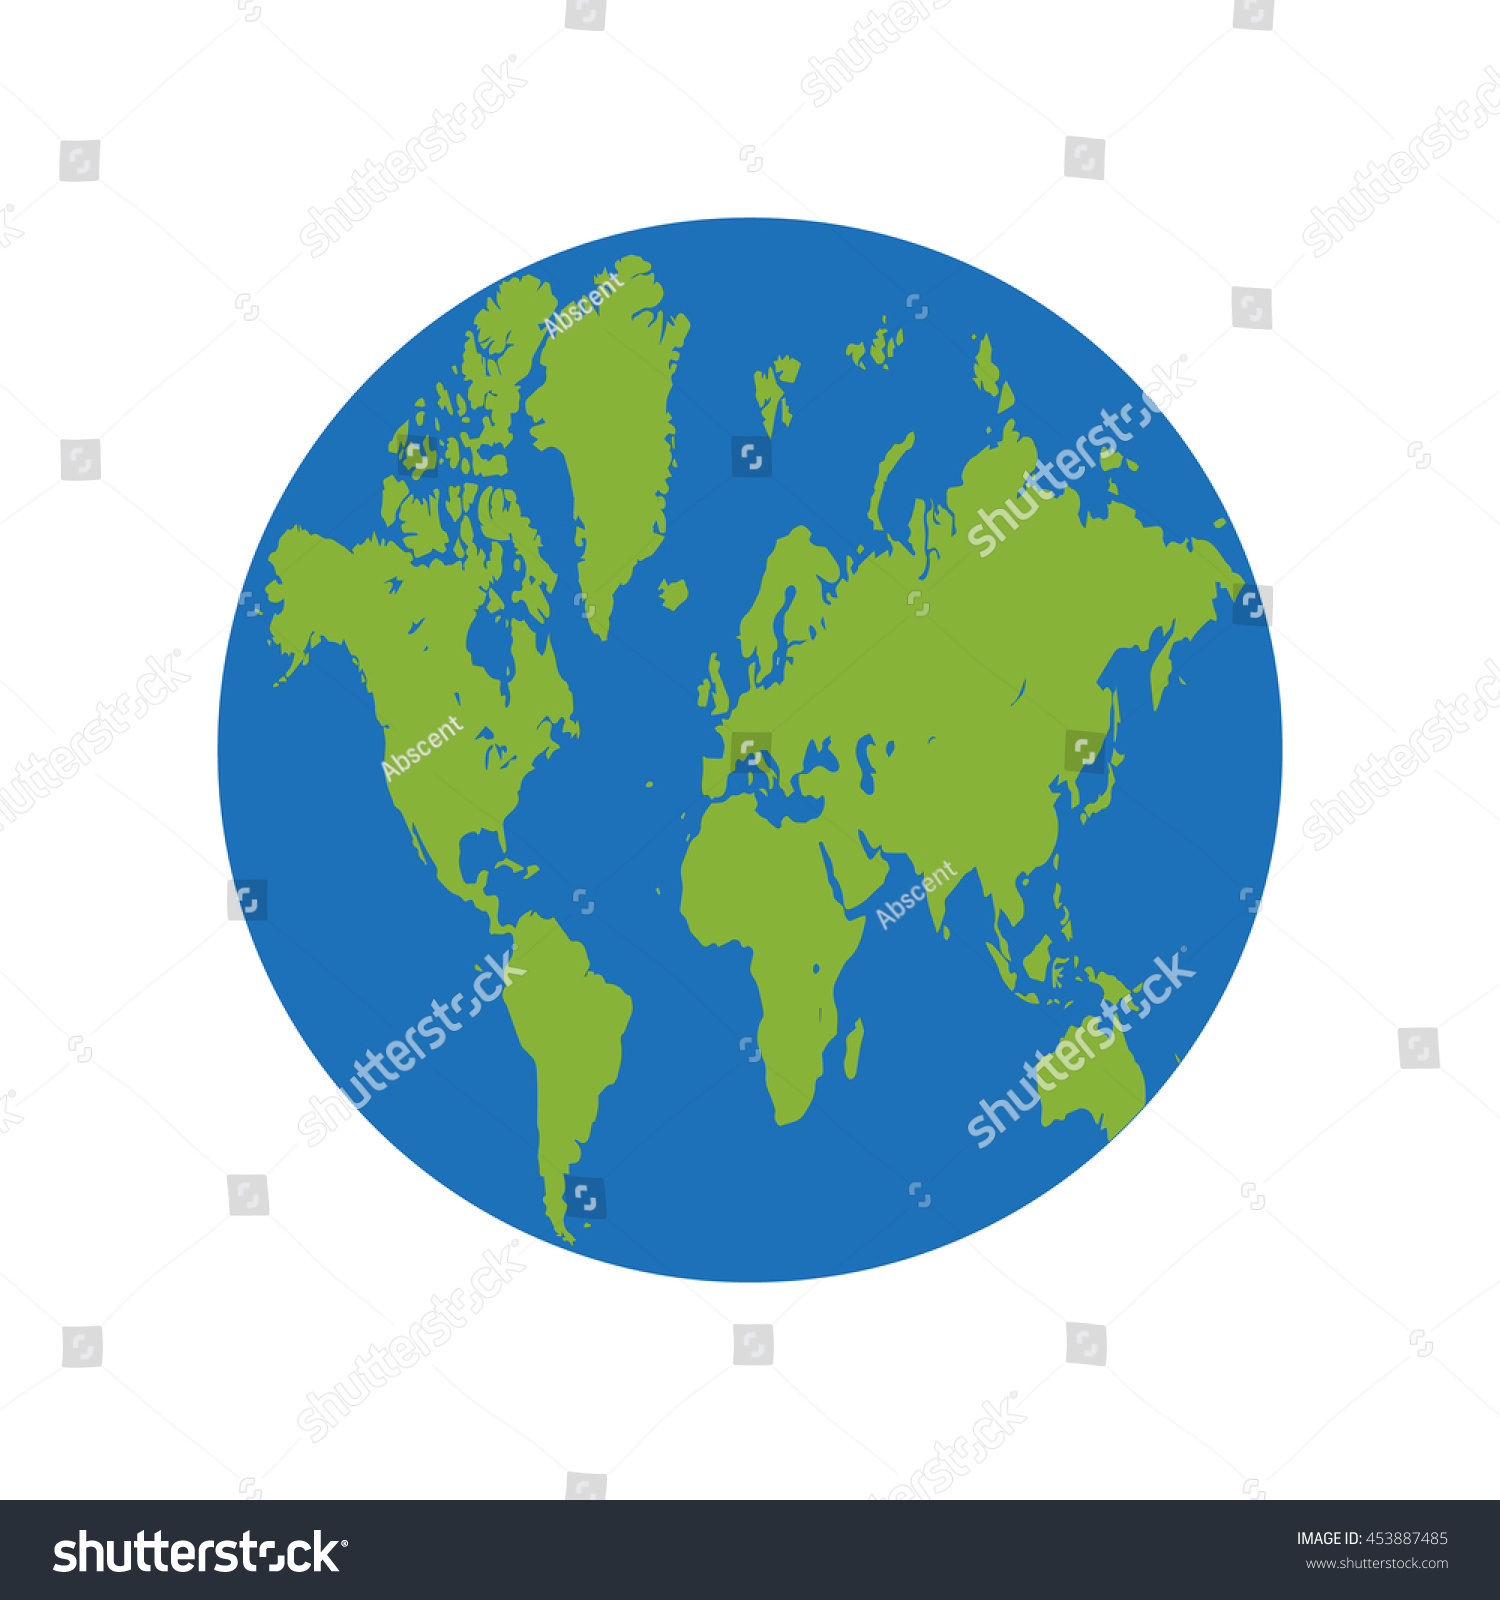 Earth globe icon green map world vectores en stock 453887485 earth globe icon green map of world in circle on white background gumiabroncs Gallery